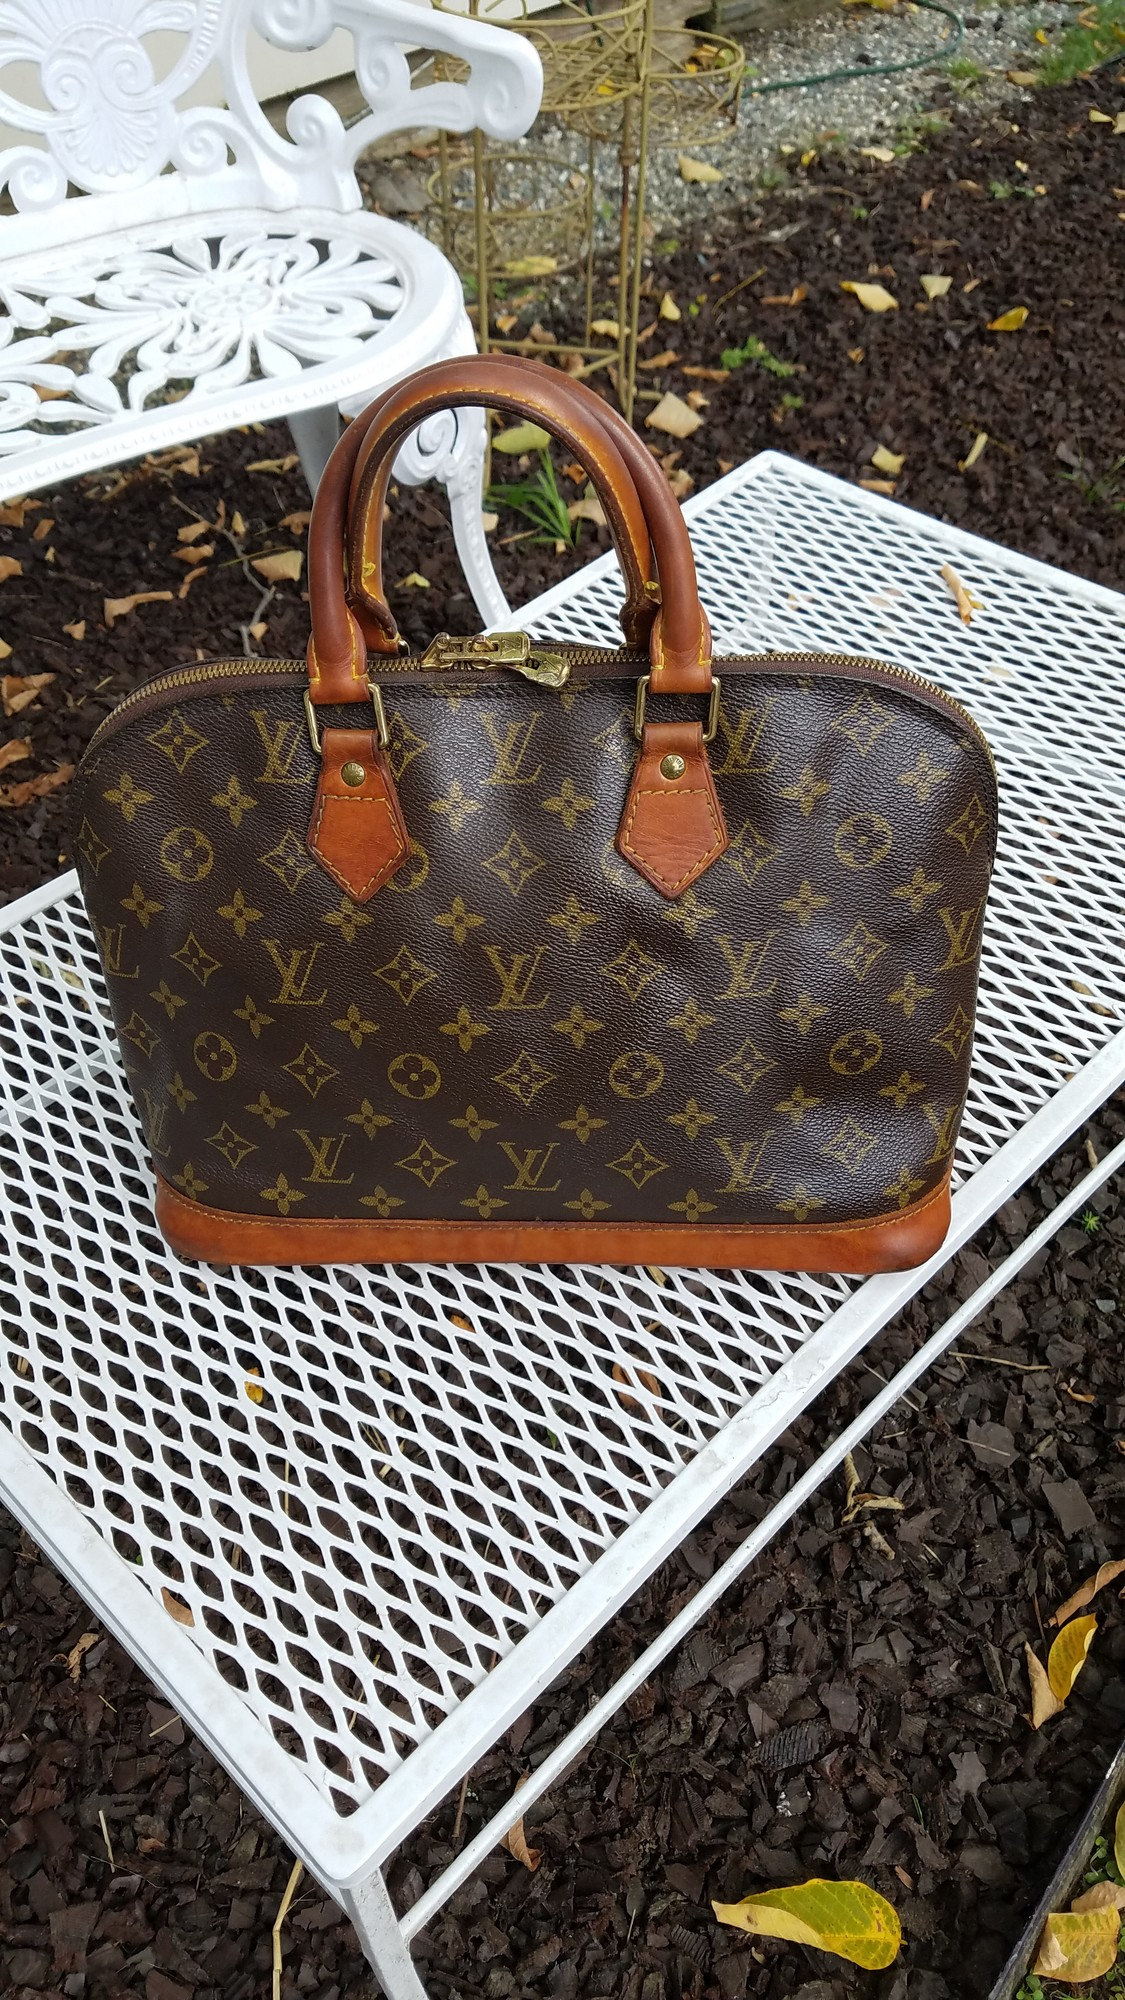 VINTAGE ALMA MADE IN FRANCE 1994<br /> THE PATINA ON THIS BAG IS RICH IN COLOR<br /> INSIDE HAS 1 NOTICABLE STAIN<br /> CORNERS SHOW WEAR BUT LOOKS LIKE IT HAS BEEN SEALED<br /> THIS BAG HAS LOTS OF LIFE LEFT